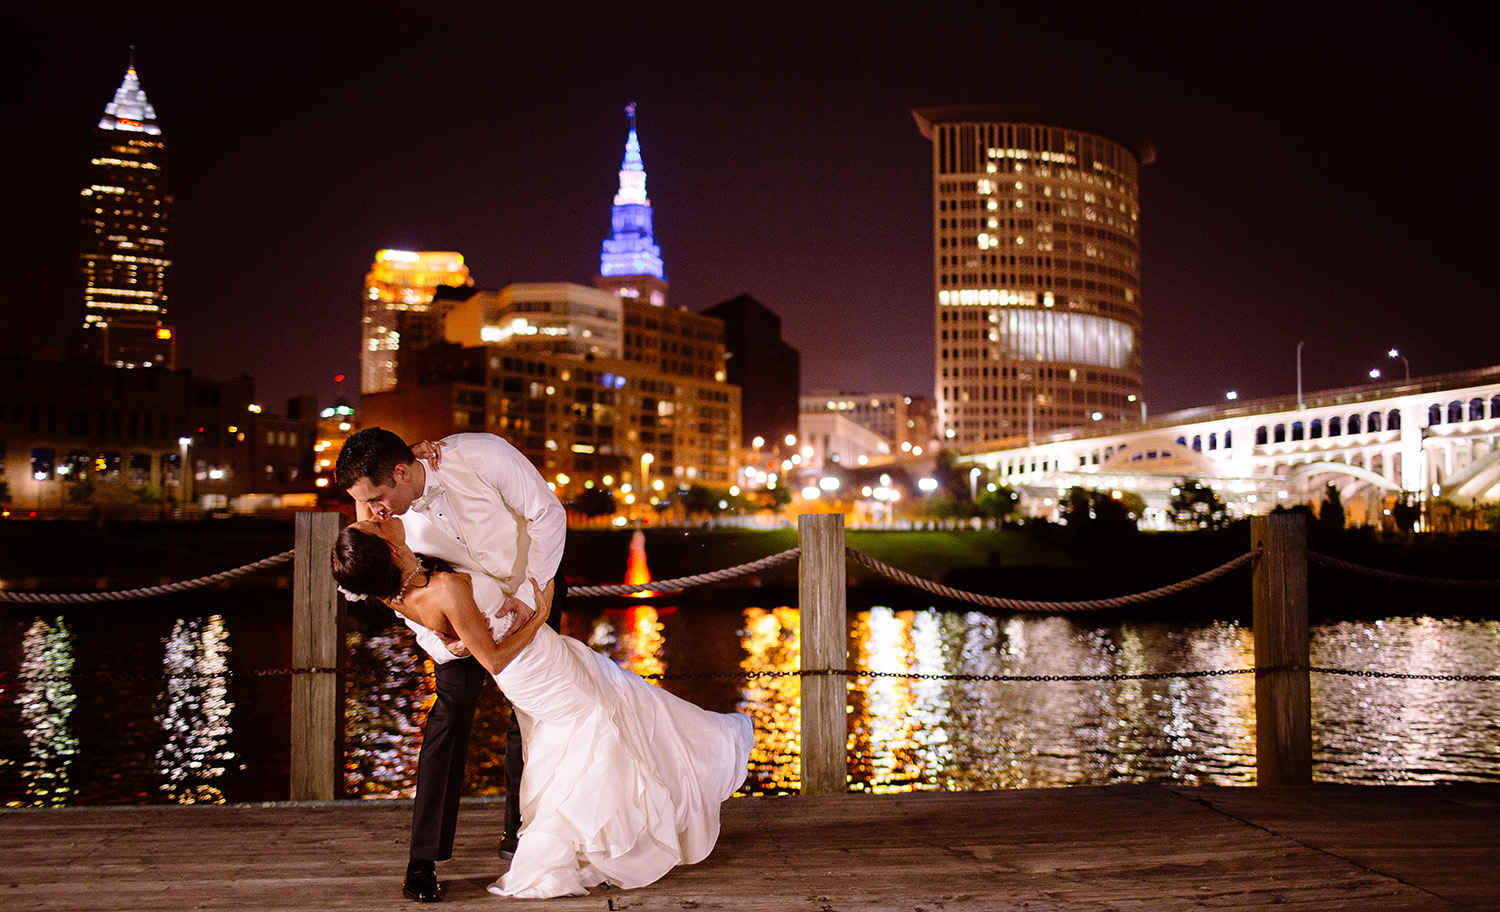 Cleveland Wedding Photographer - Windows on the River - Skyline - Mere and Joe - too much awesomeness